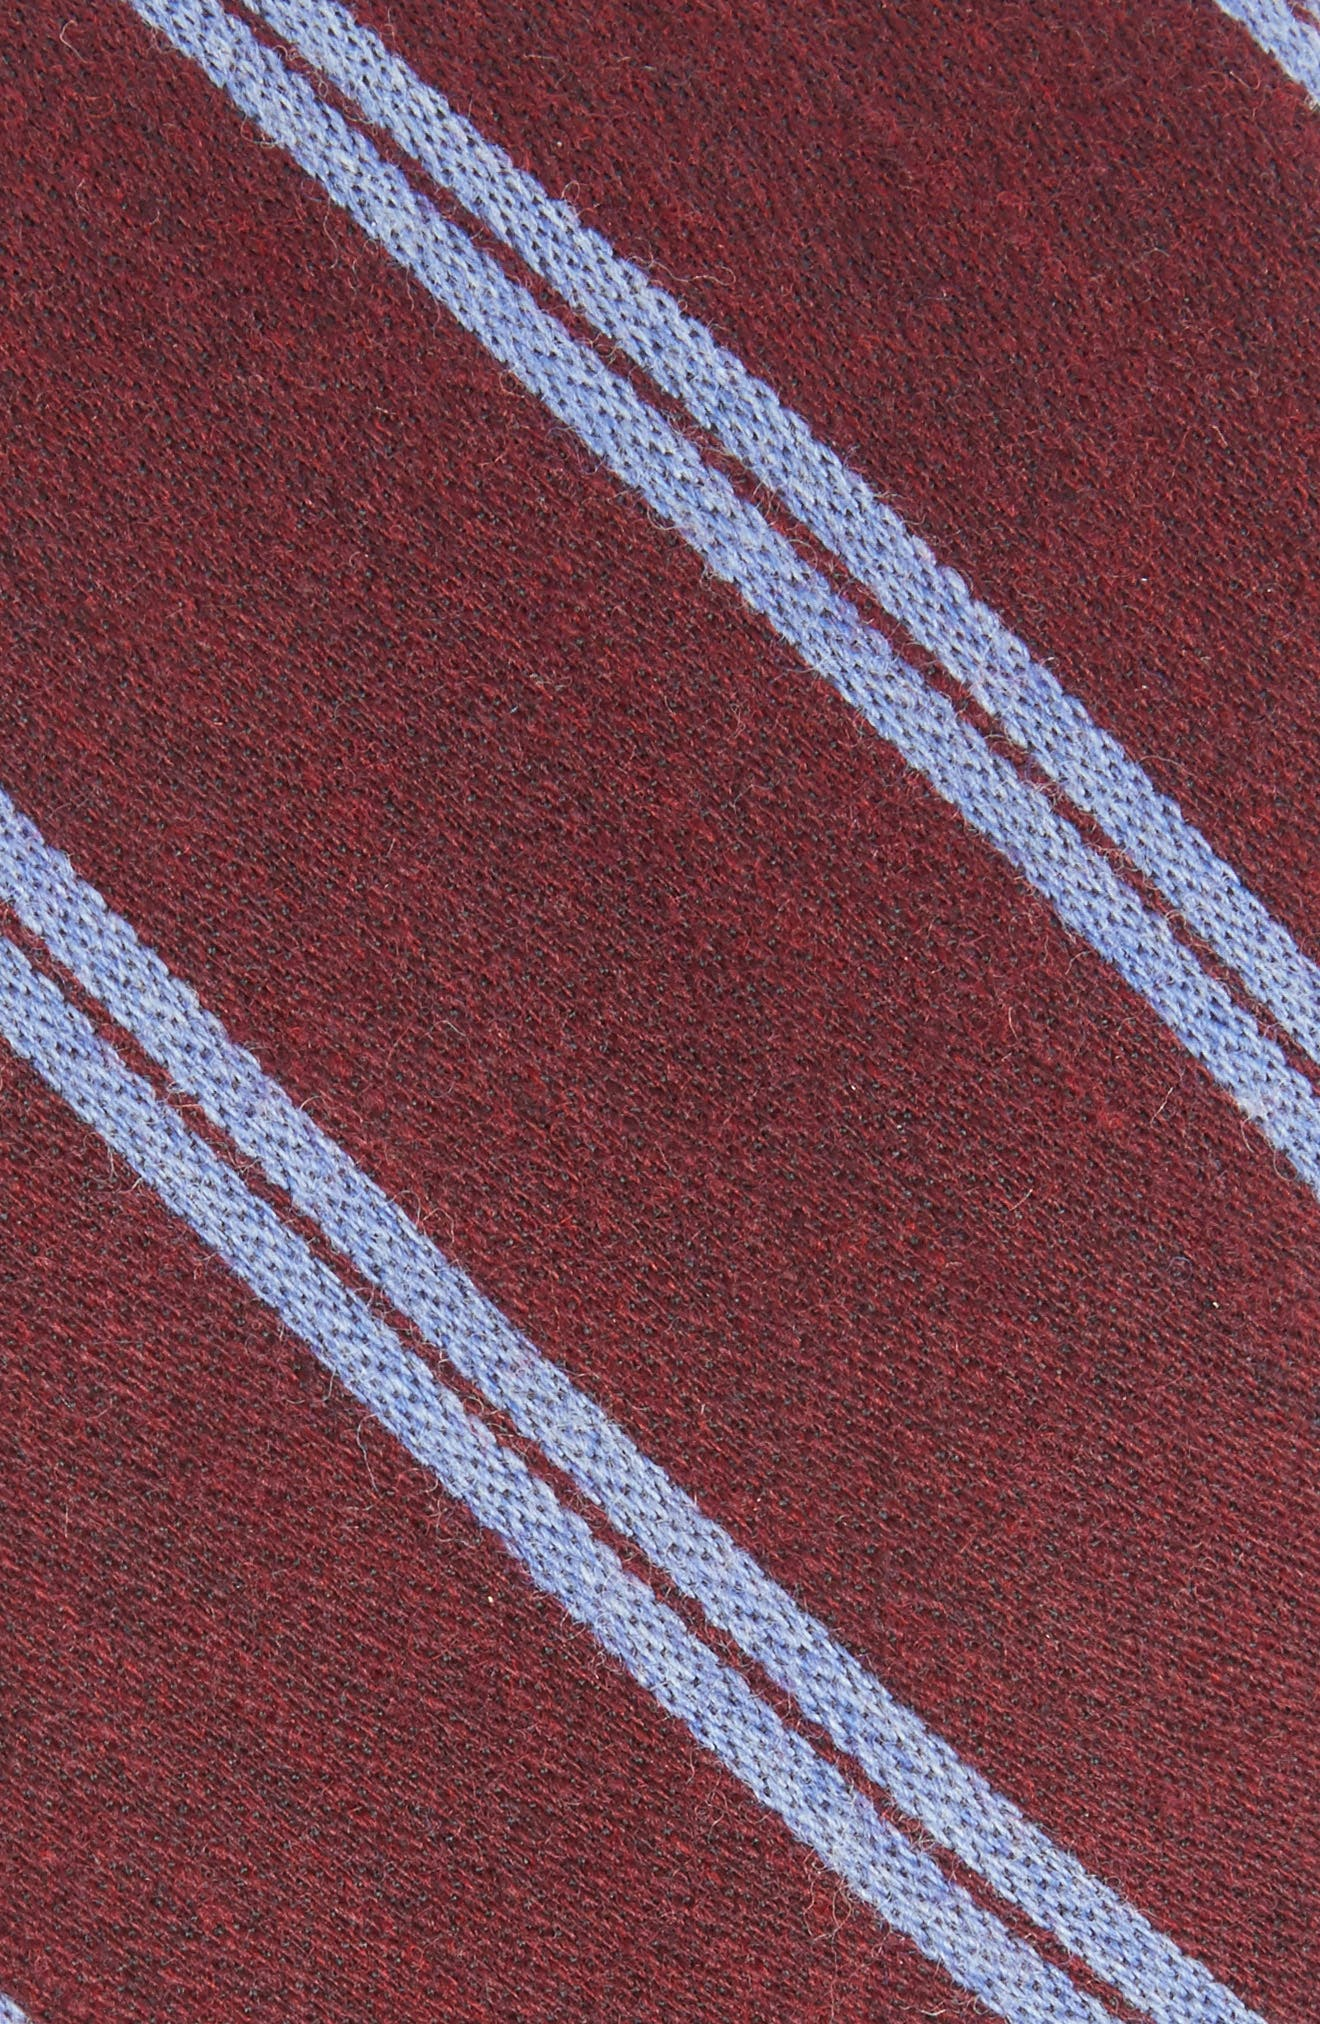 Deo Stripe Wool Tie,                             Alternate thumbnail 2, color,                             Red